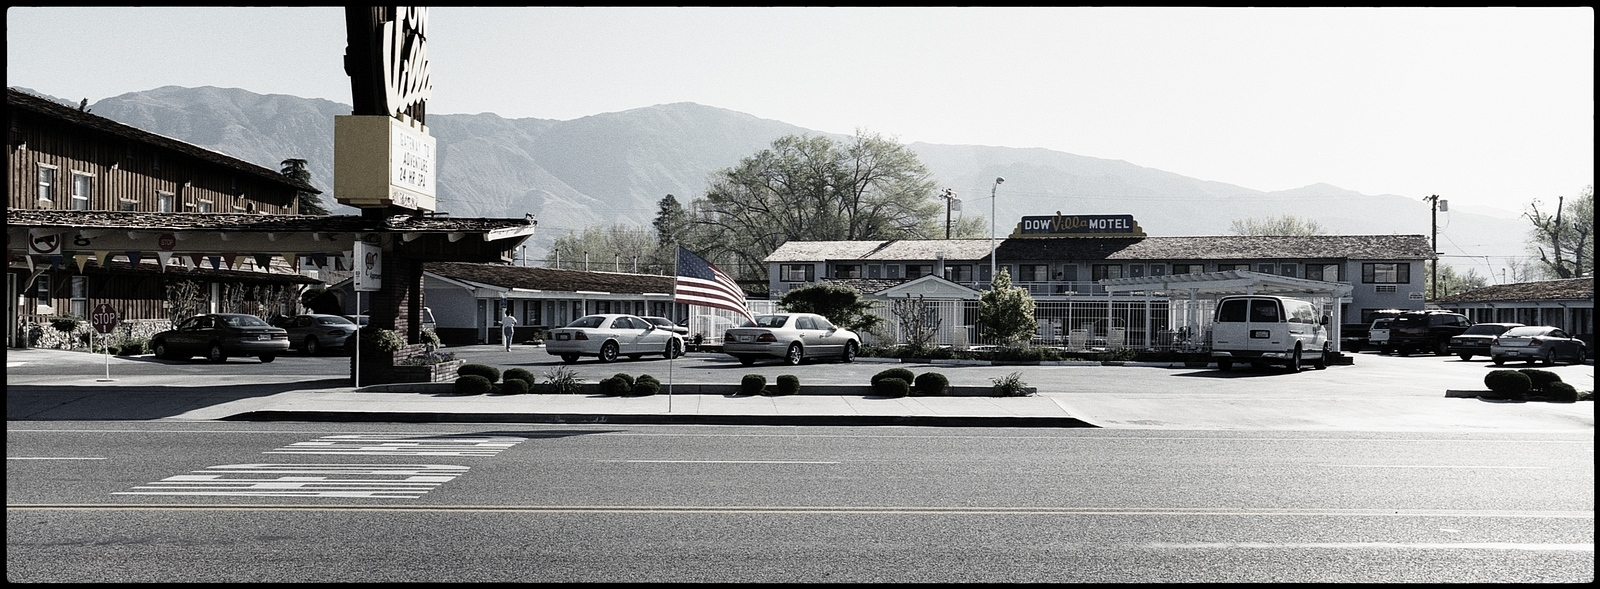 Dow Villa Motel, Lone Pine, CA, USA.All pictures are © Cyril Fakiri - No use without permission.